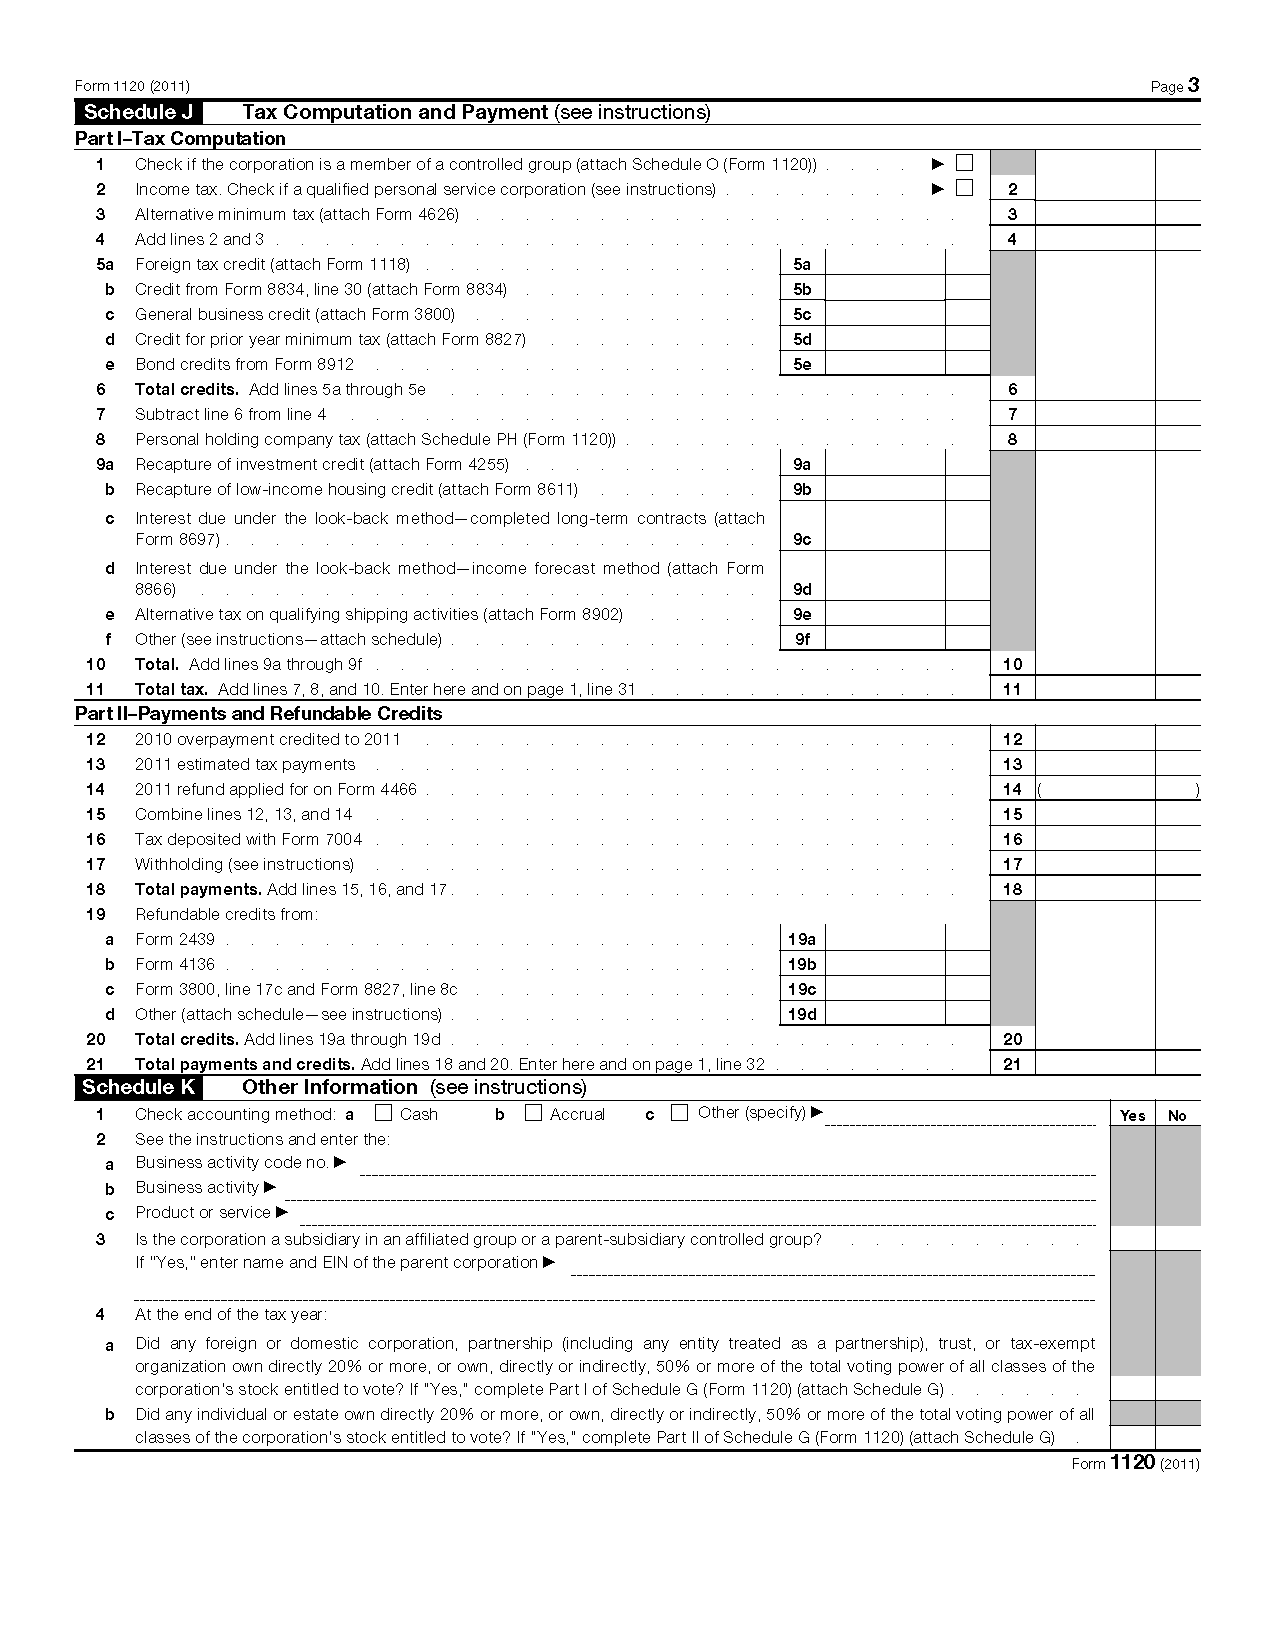 Form 1120 U.S. Corporation Income Tax Return